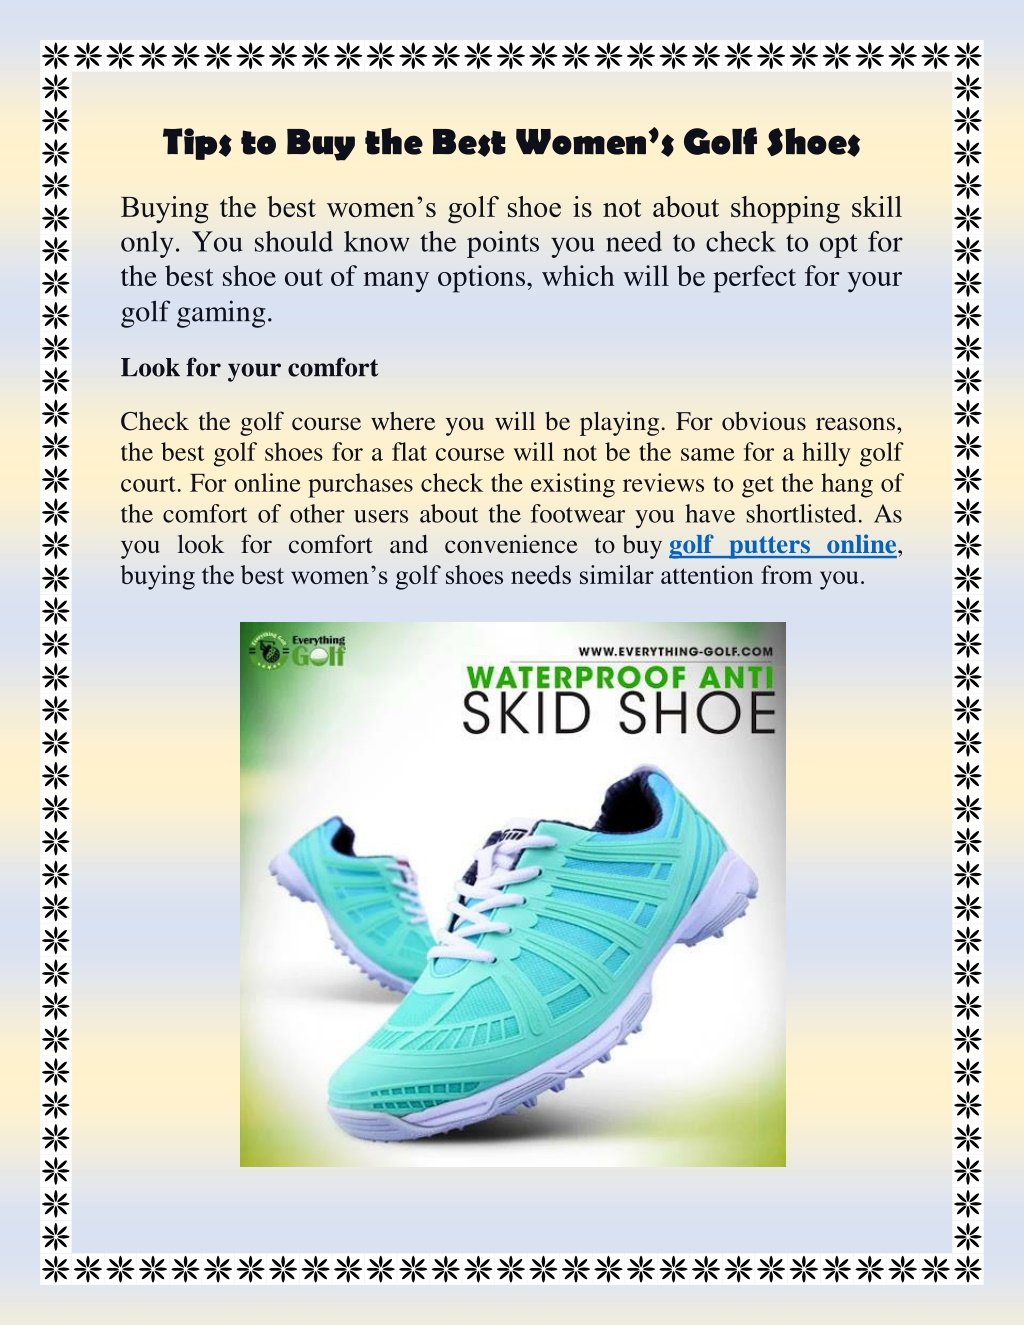 PPT - Tips to Buy the Best Women's Golf Shoes PowerPoint Presentation - ID:10060555